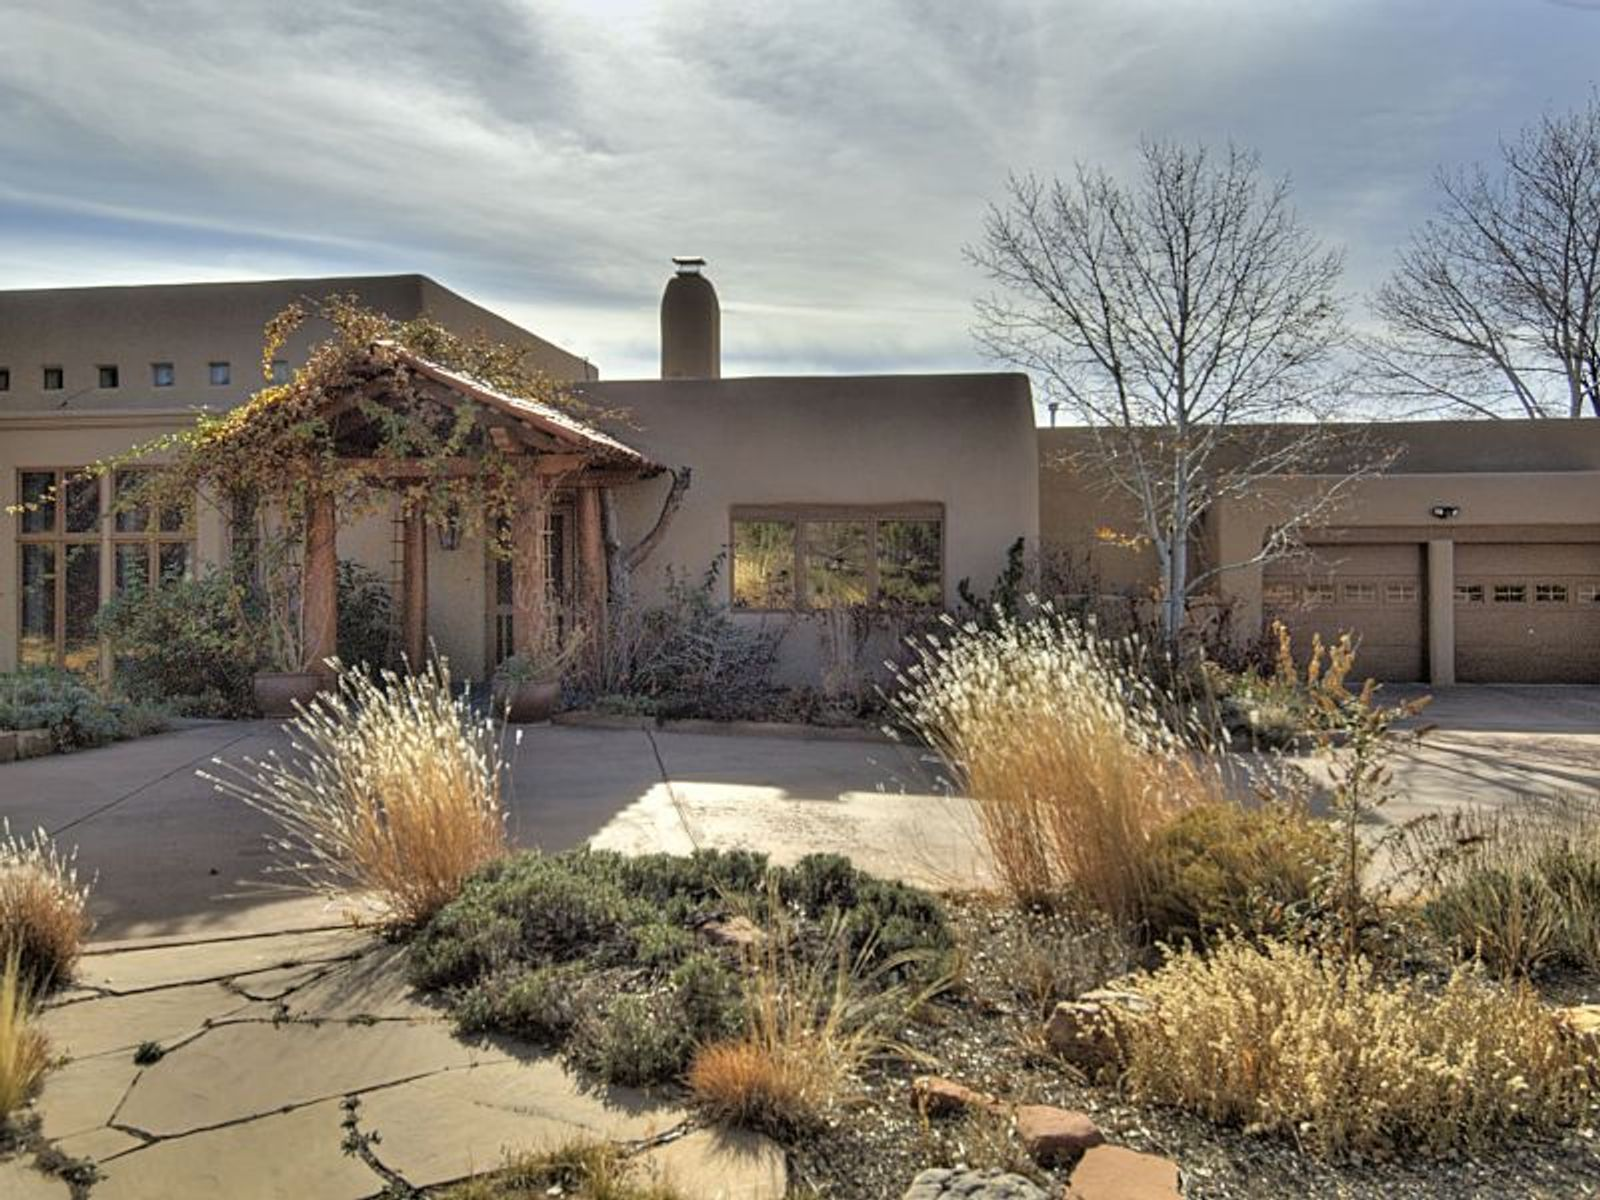 960 Old Santa Fe Trail, Santa Fe NM Single Family Home - Santa Fe Real Estate